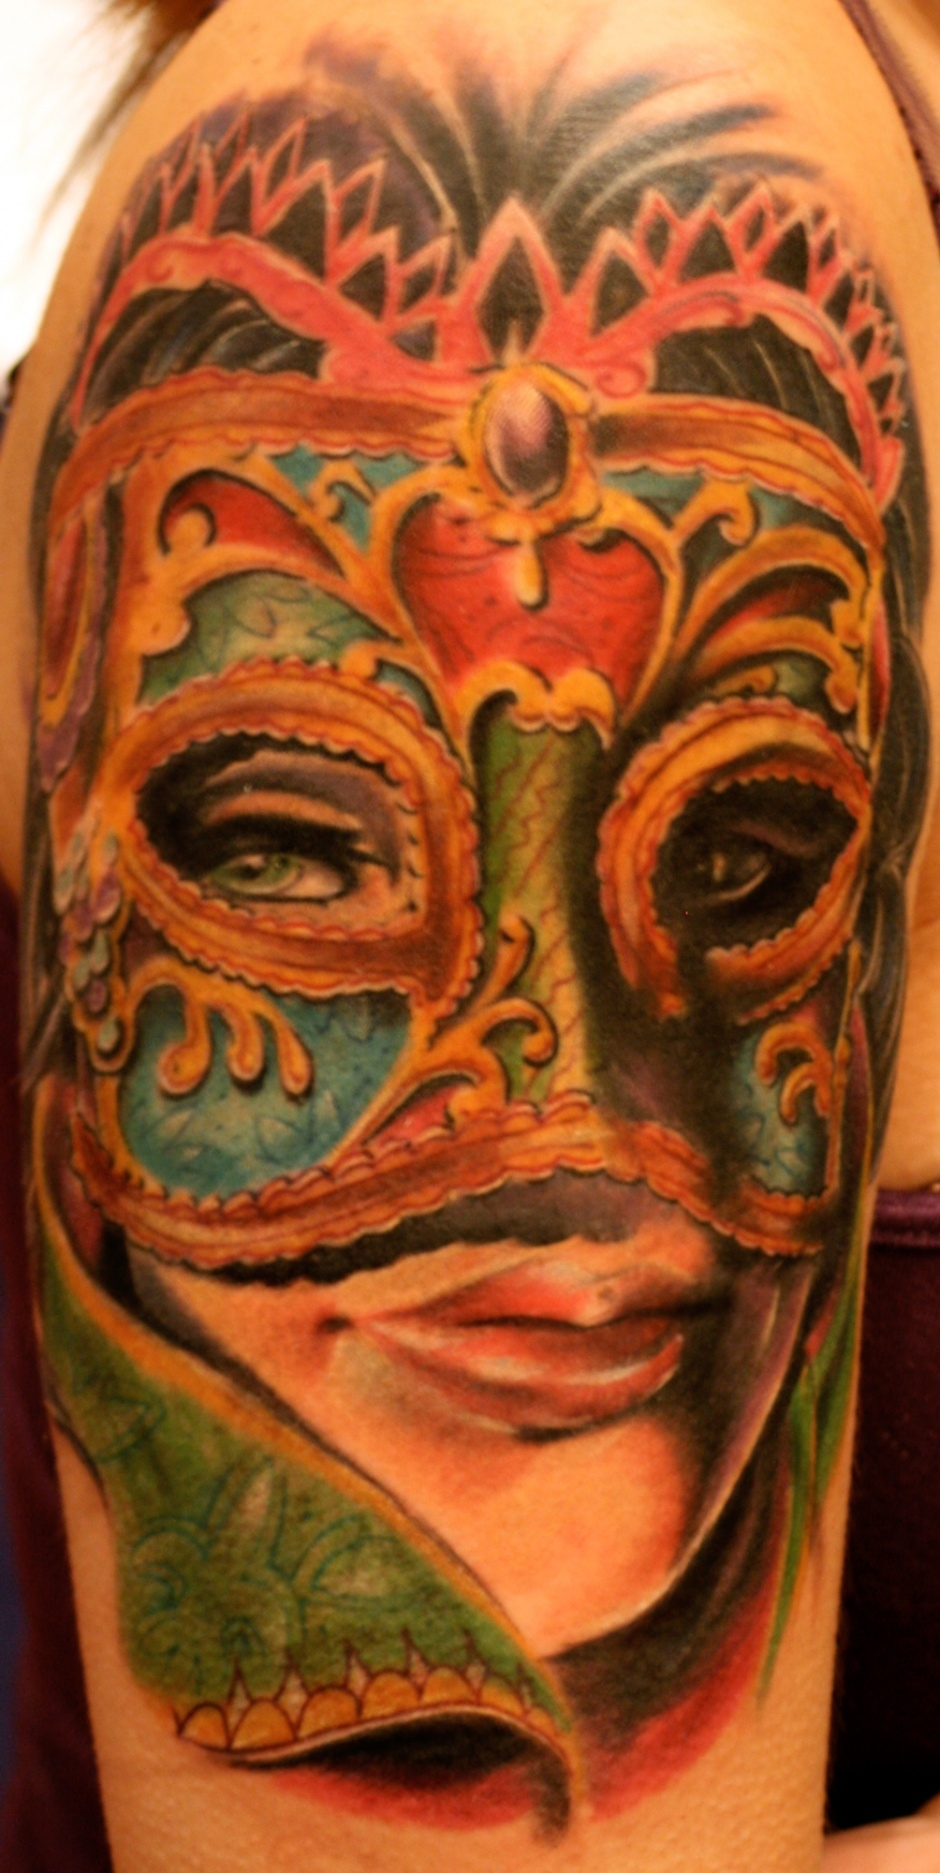 Masquerade party tattoo by John Montgomery